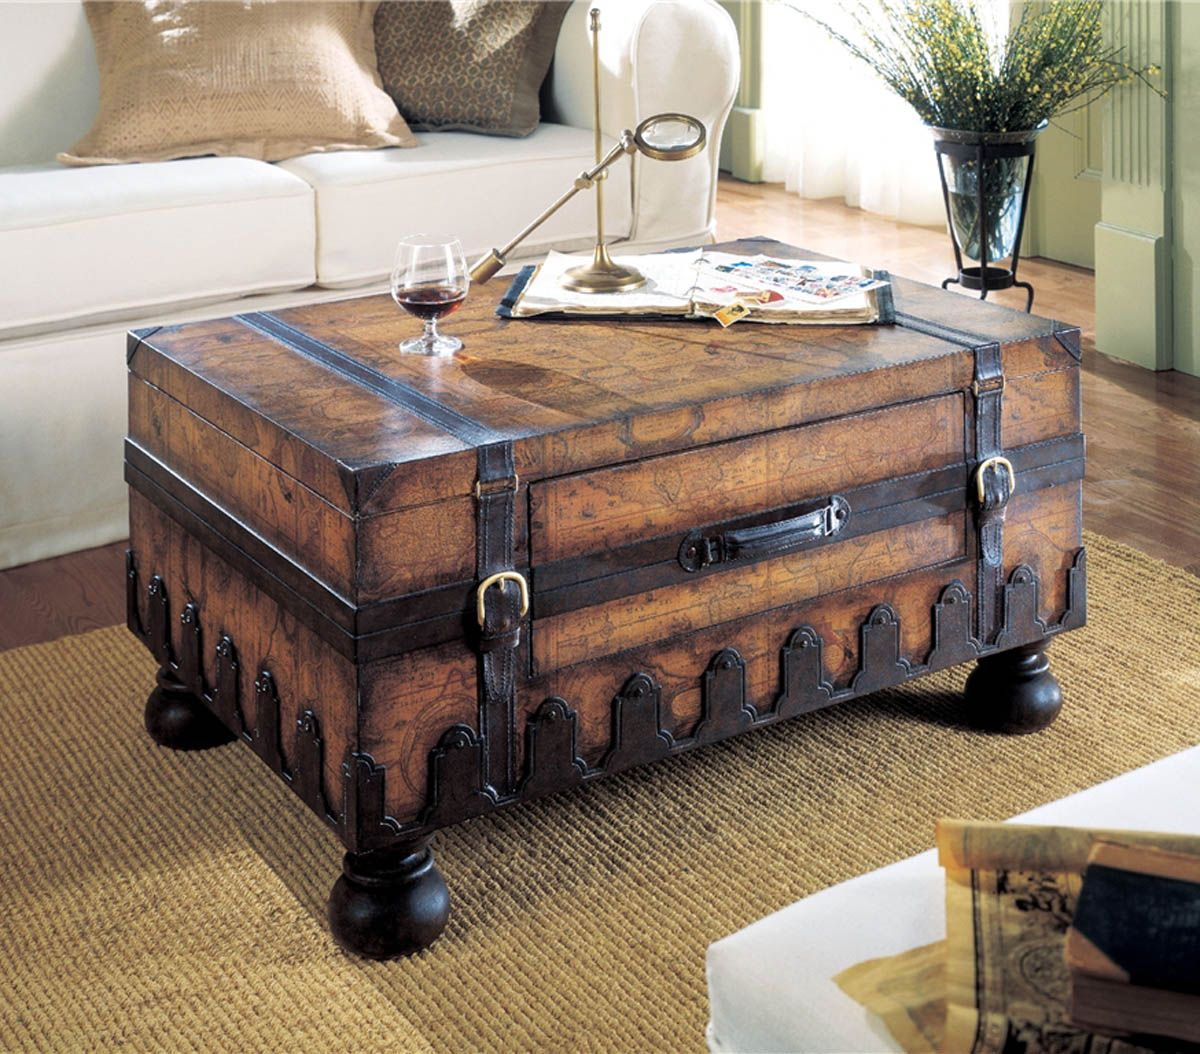 17 Old Trunks Turned Into Beautiful Vintage Table Coffee Table Trunk Chest Coffee Table Coffee Table Vintage